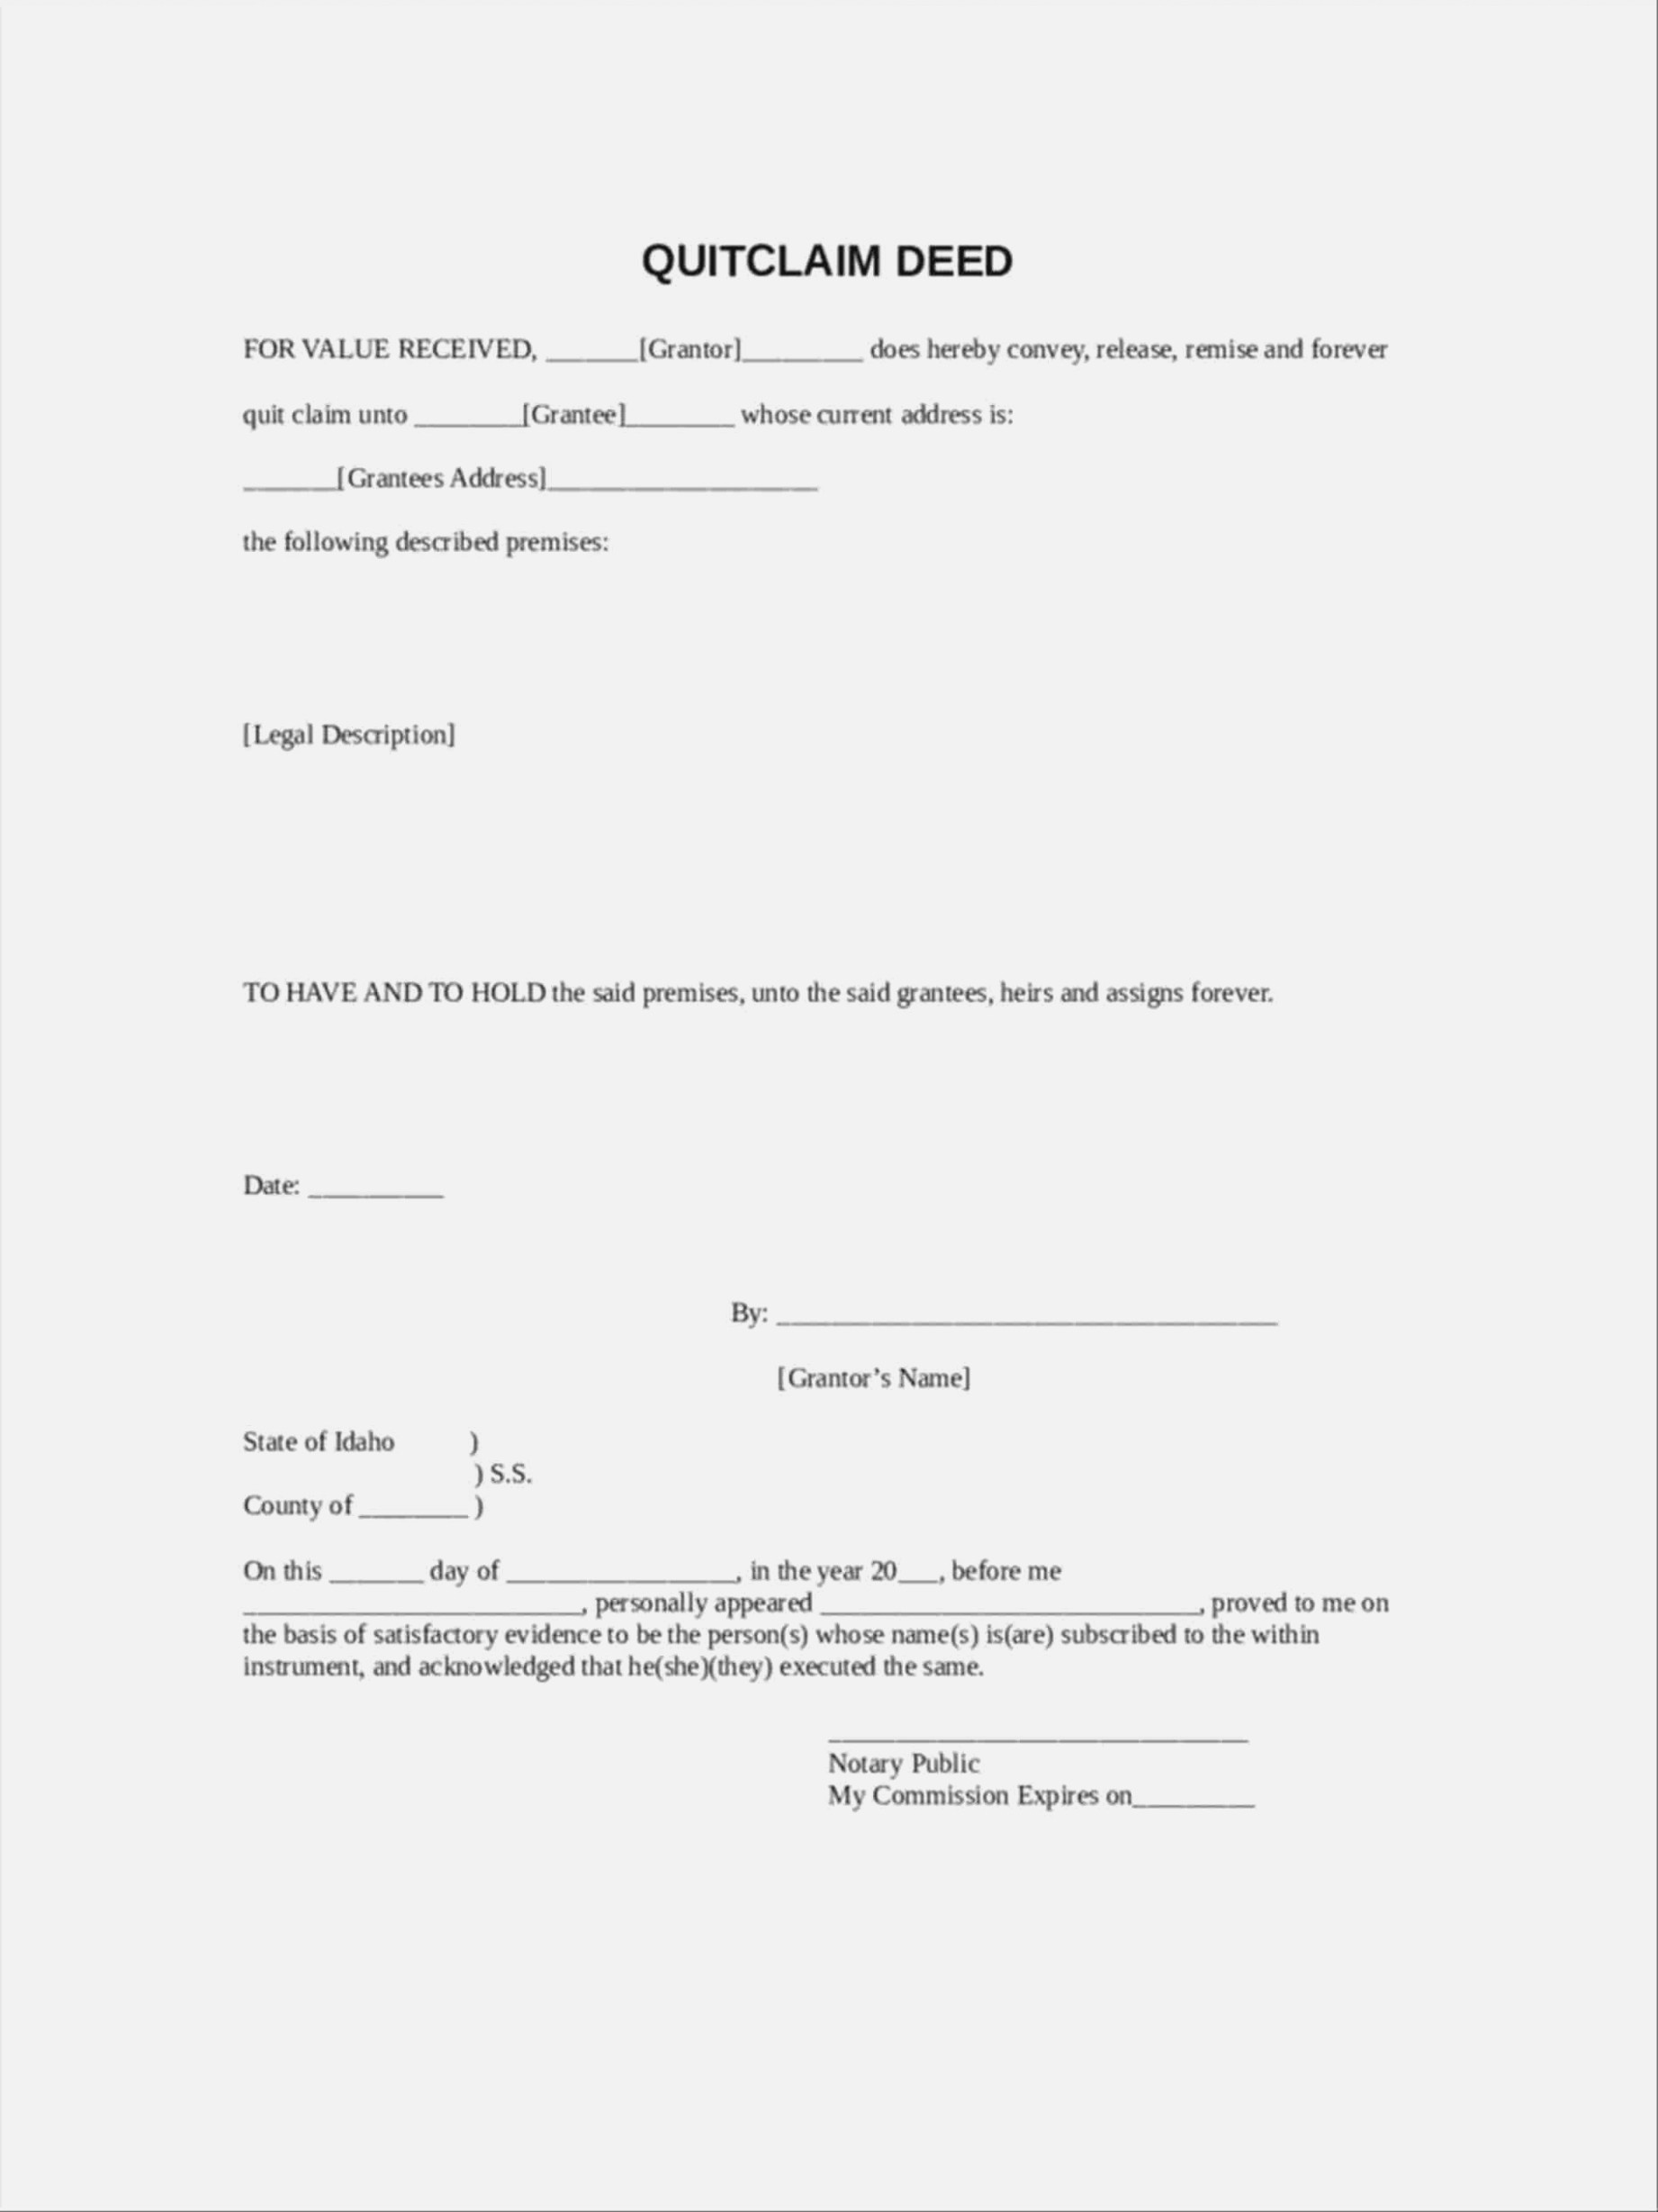 I Will Tell You The Truth | Realty Executives Mi : Invoice And - Free Printable Quit Claim Deed Form